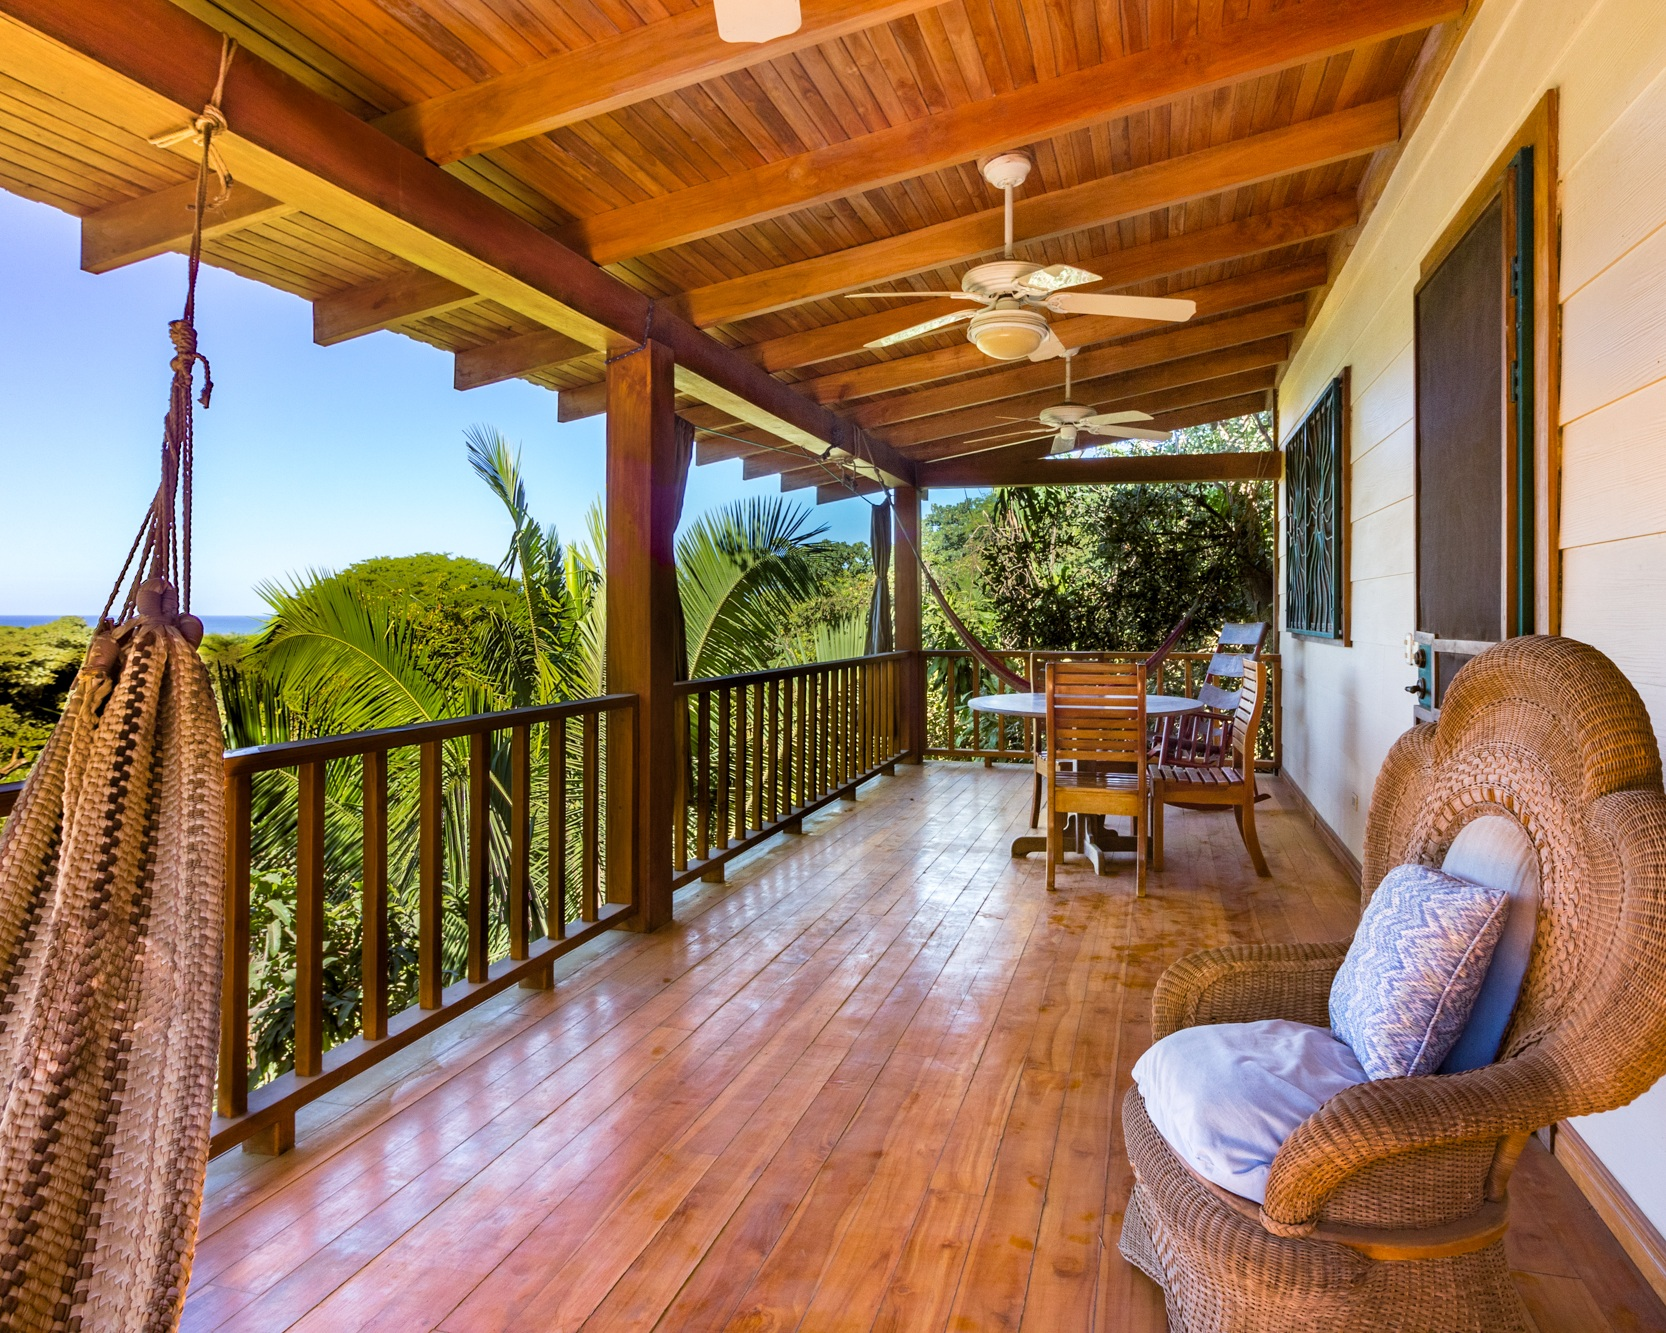 Ocean Views 2 Large Patios Private Location Private Pool Fully Equipped Kitchen Sleeps 4 WIFI Television  CLICK FOR MORE DETAILS